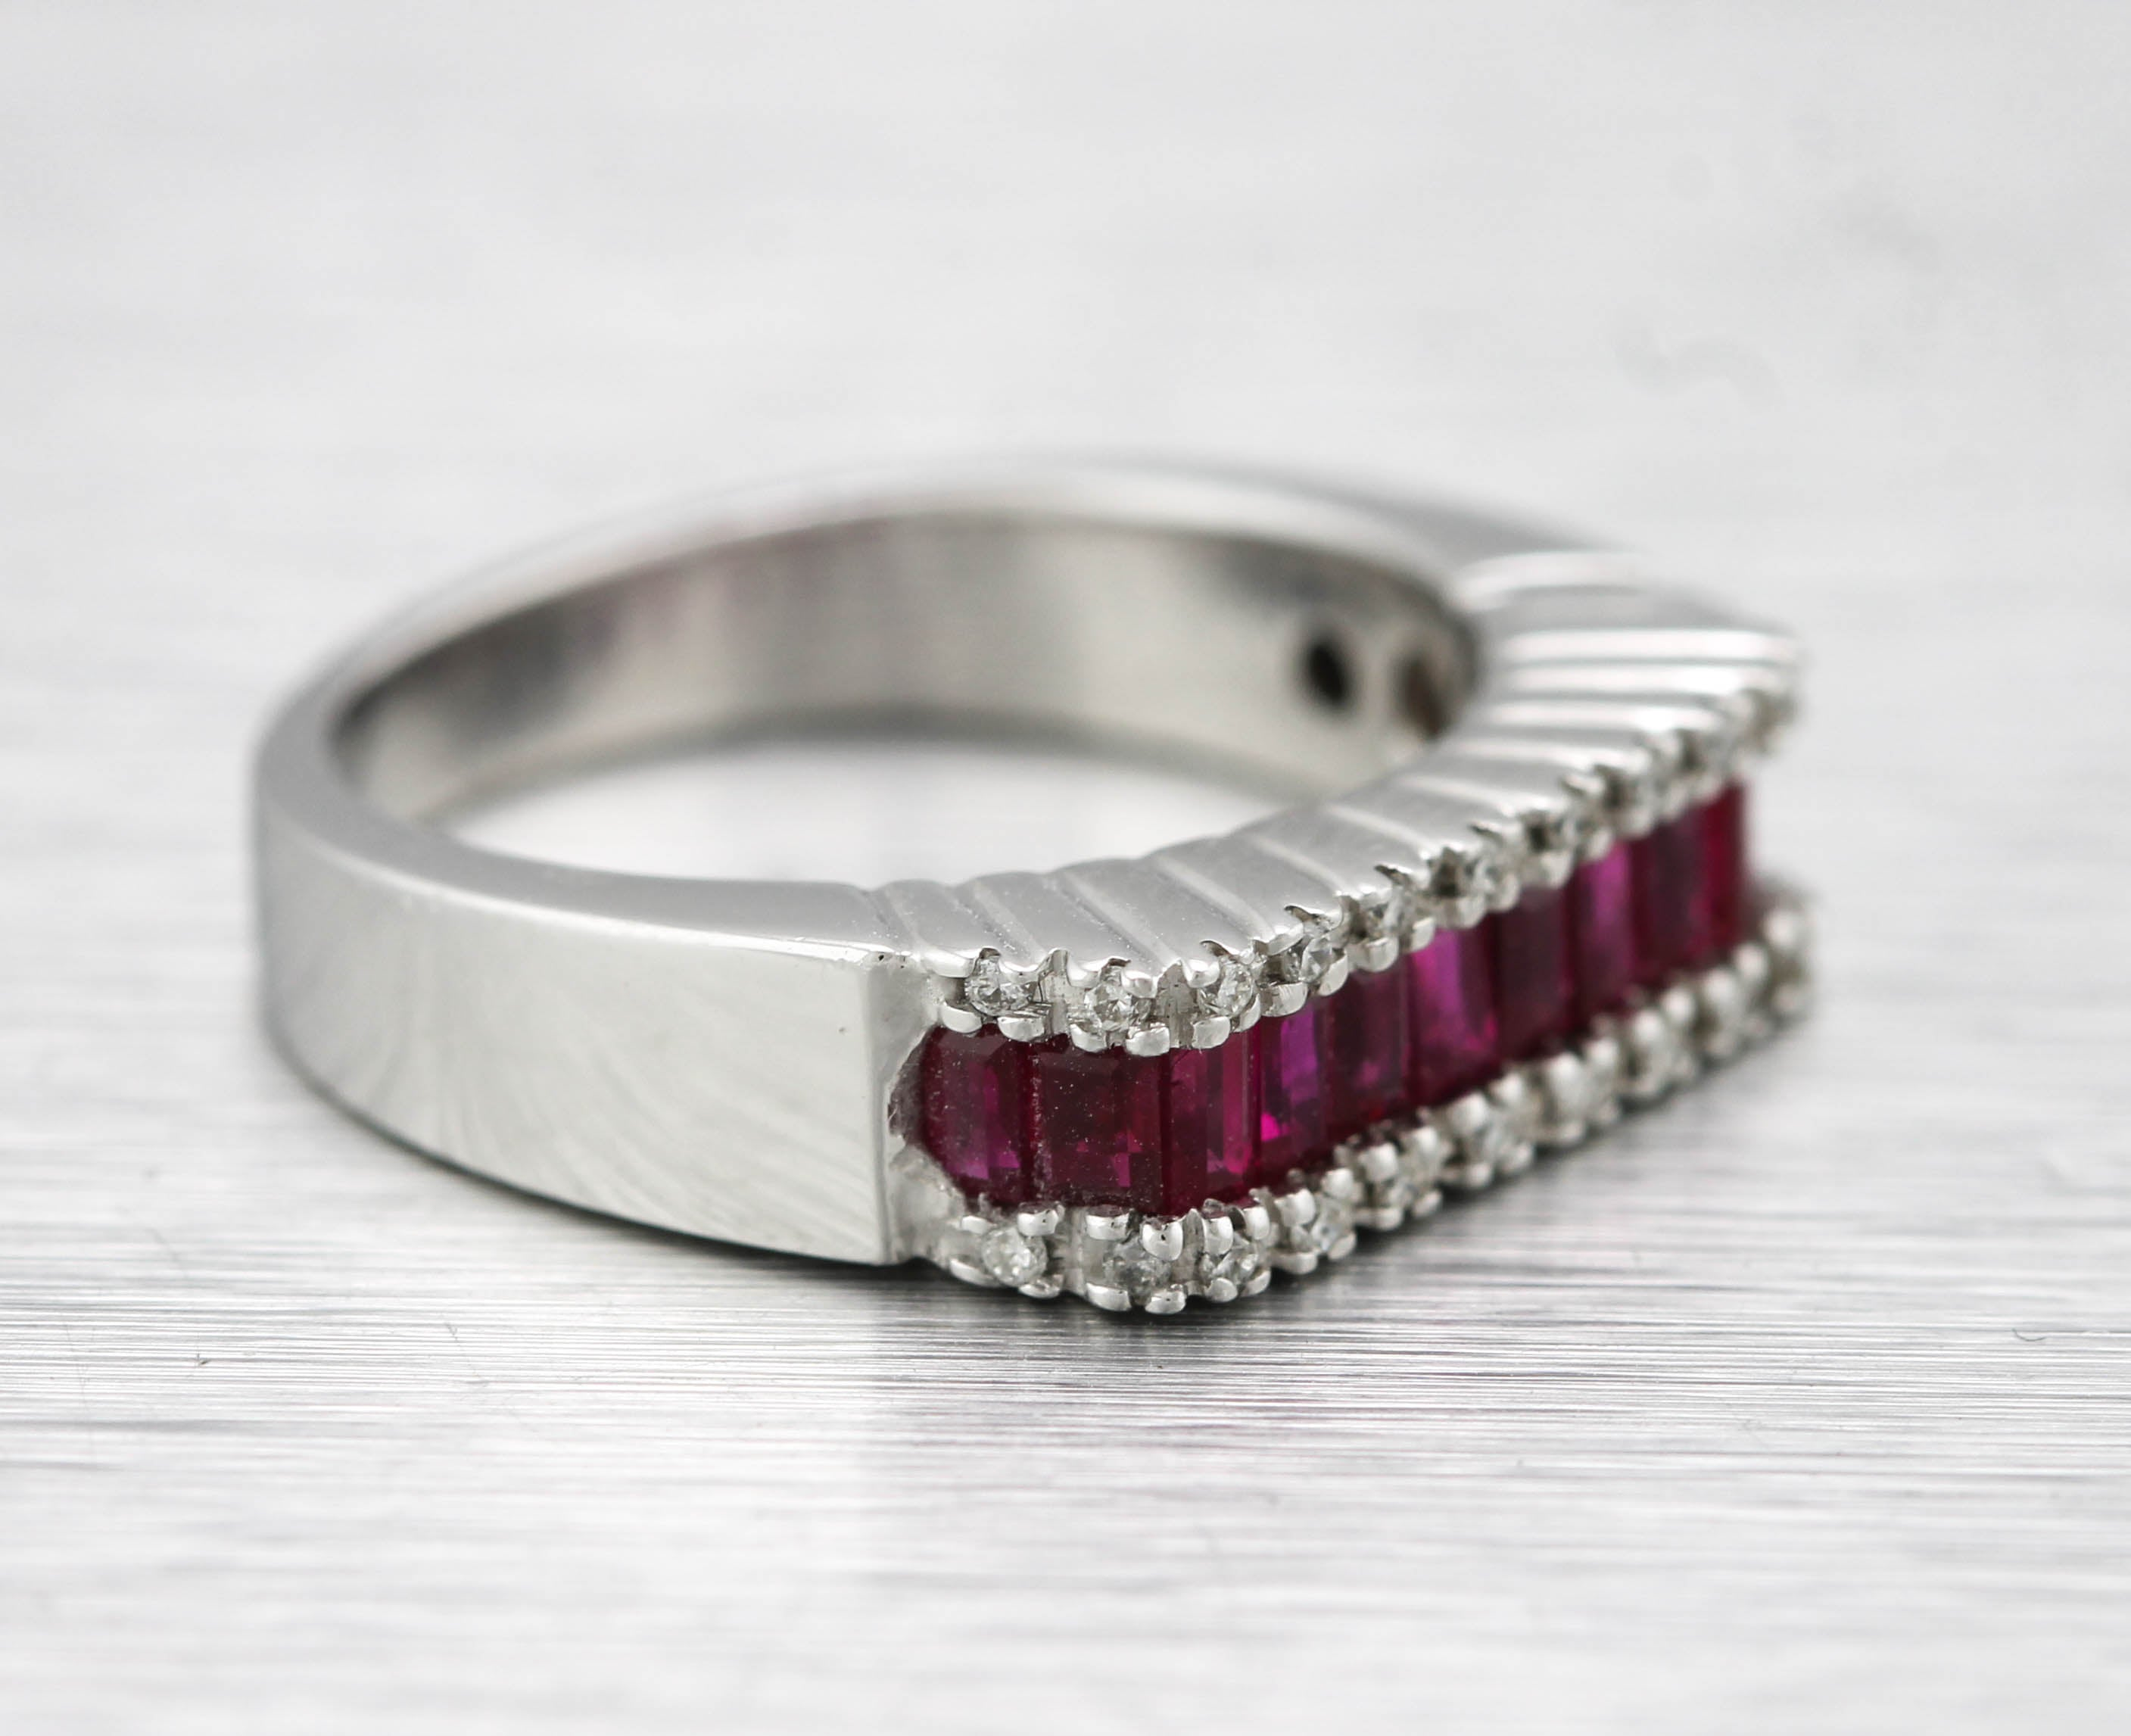 Ladies Modernist 14K White Gold 3x2mm Ruby Baguette Cut Diamond Band Ring